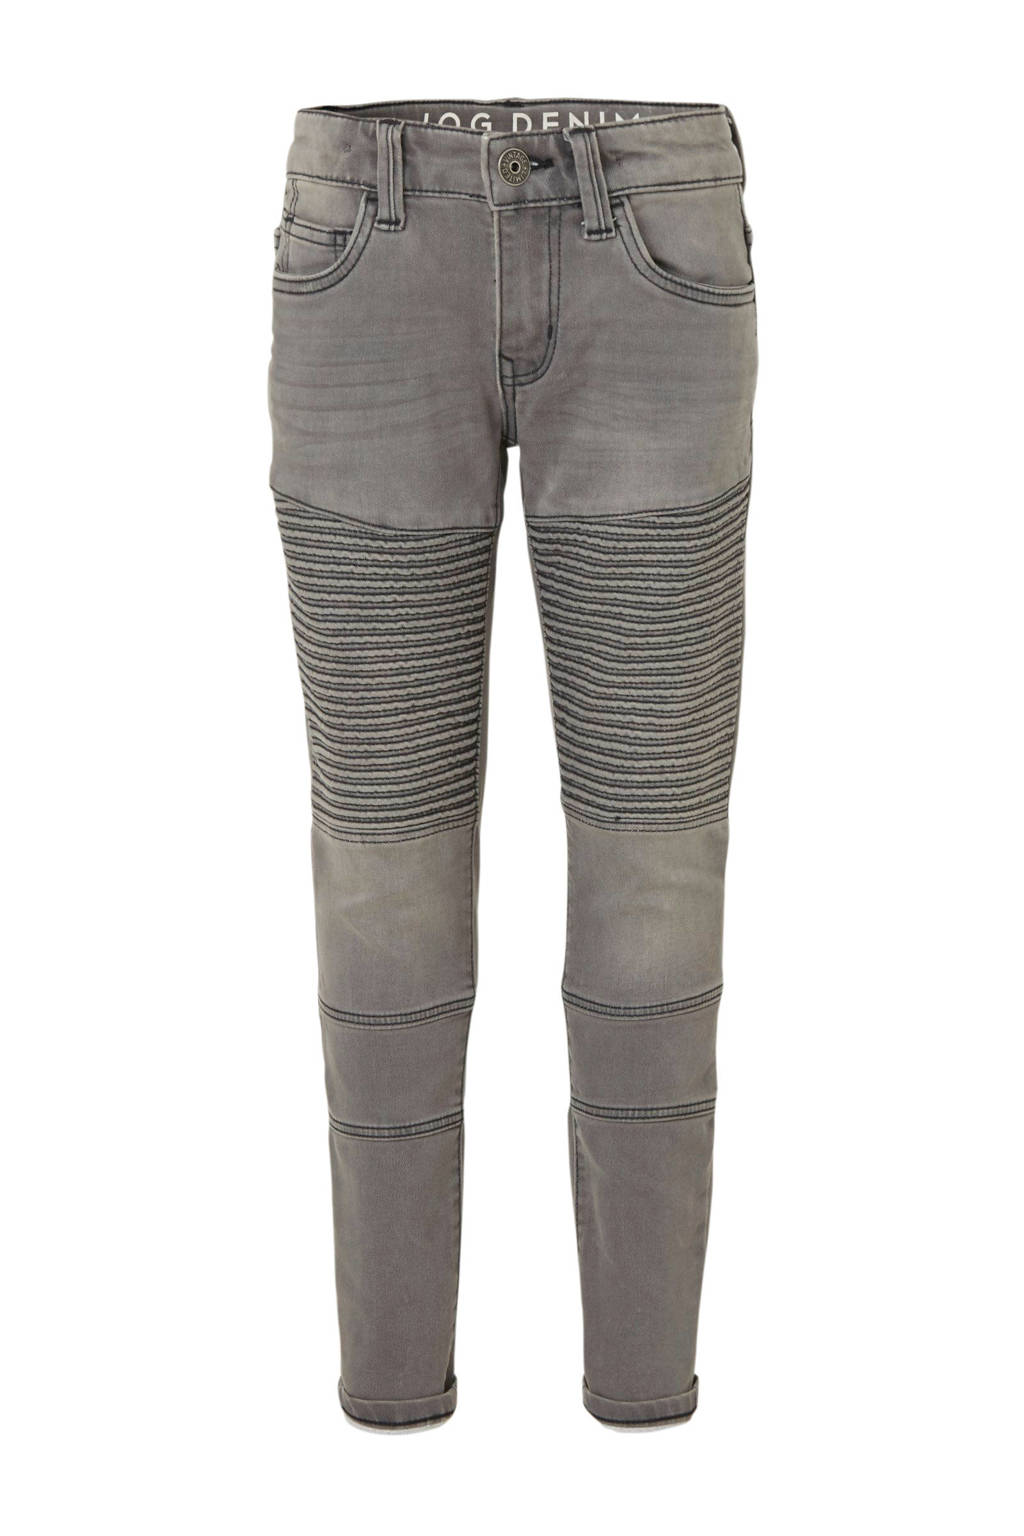 C&A Here & There slim fit jeans grijs, Grijs